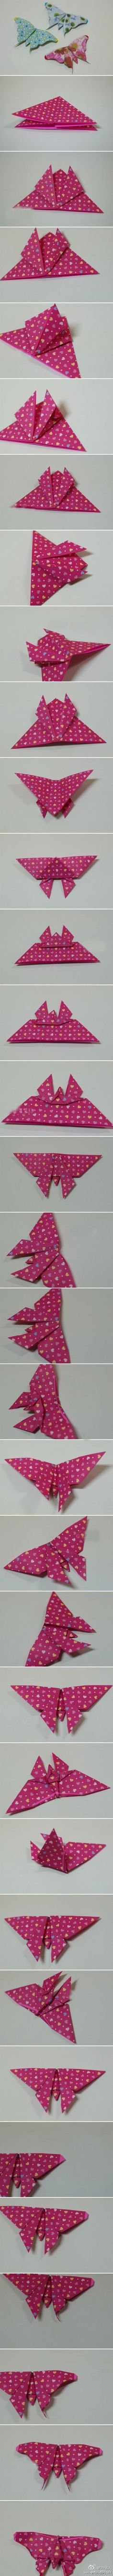 Handmade DIY origami butterfly tutorial - embellishment for cards - bjl Diy Origami, Origami And Kirigami, Origami Butterfly, Paper Crafts Origami, Origami Tutorial, Diy Paper, Paper Crafting, Paper Art, Butterfly Kids